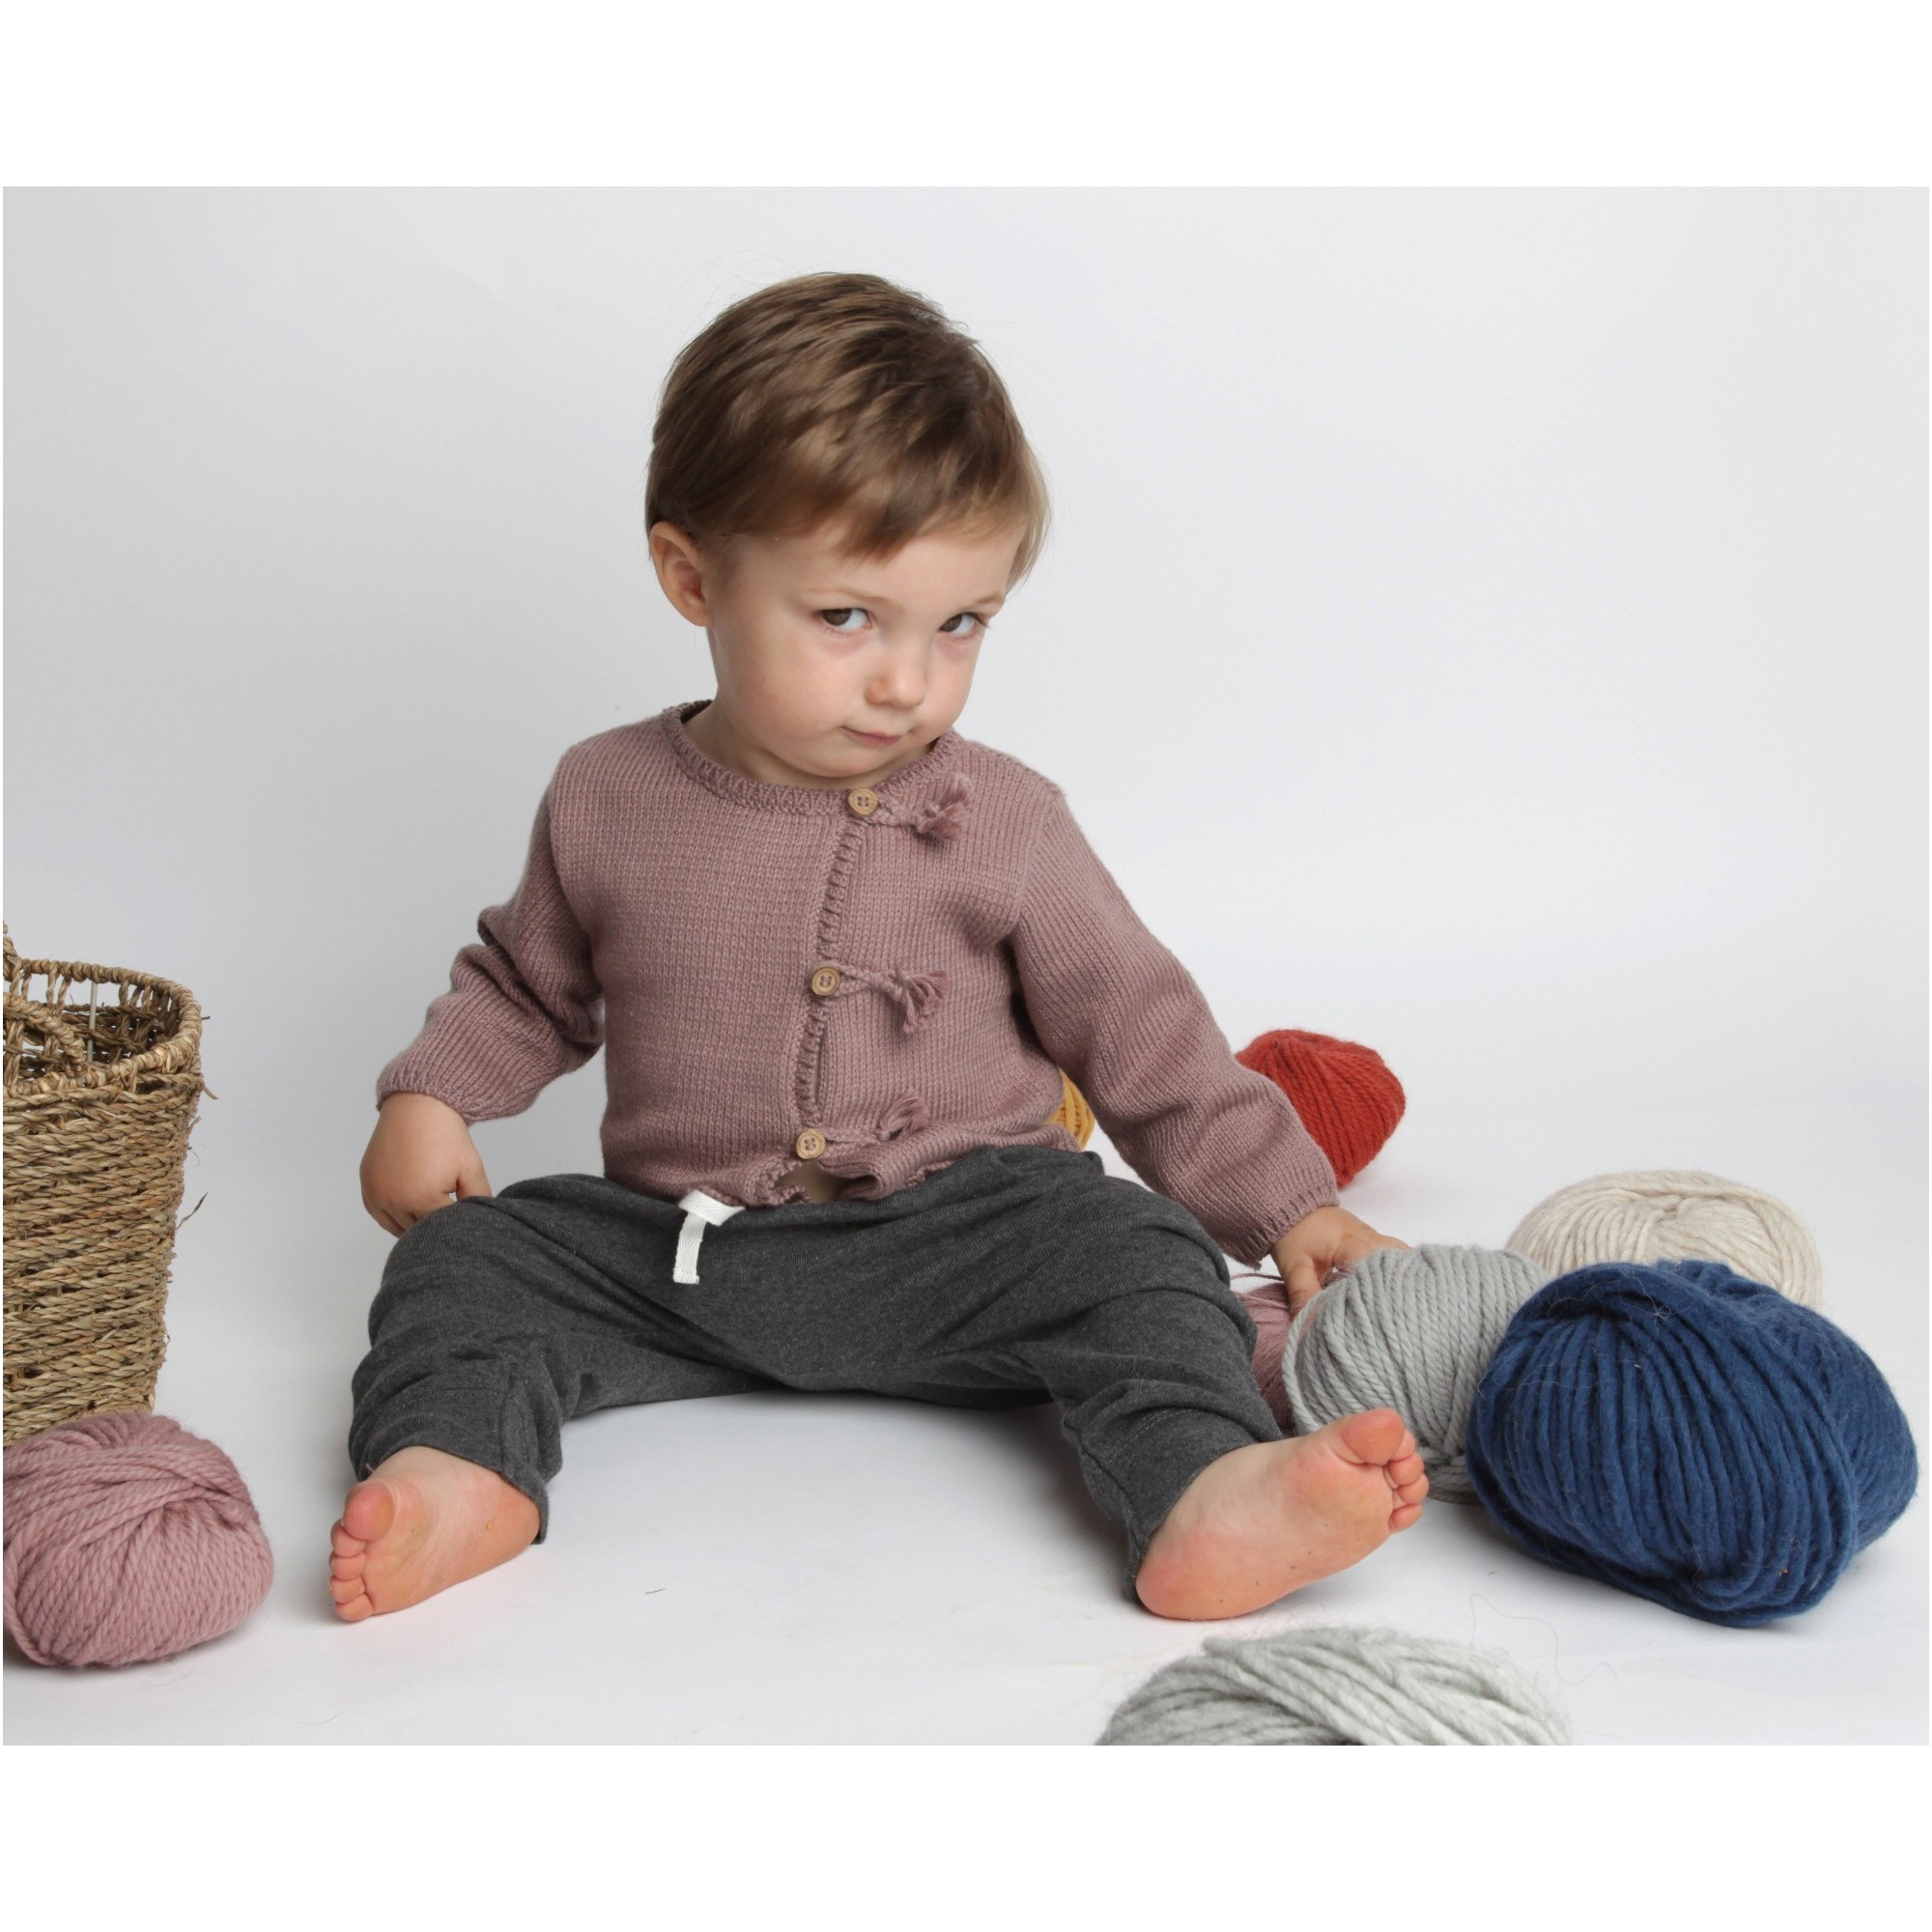 Taupe baby cardigan knitted in stockinette stitch made from cotton and cashmere yarns with dark grey baby jogging